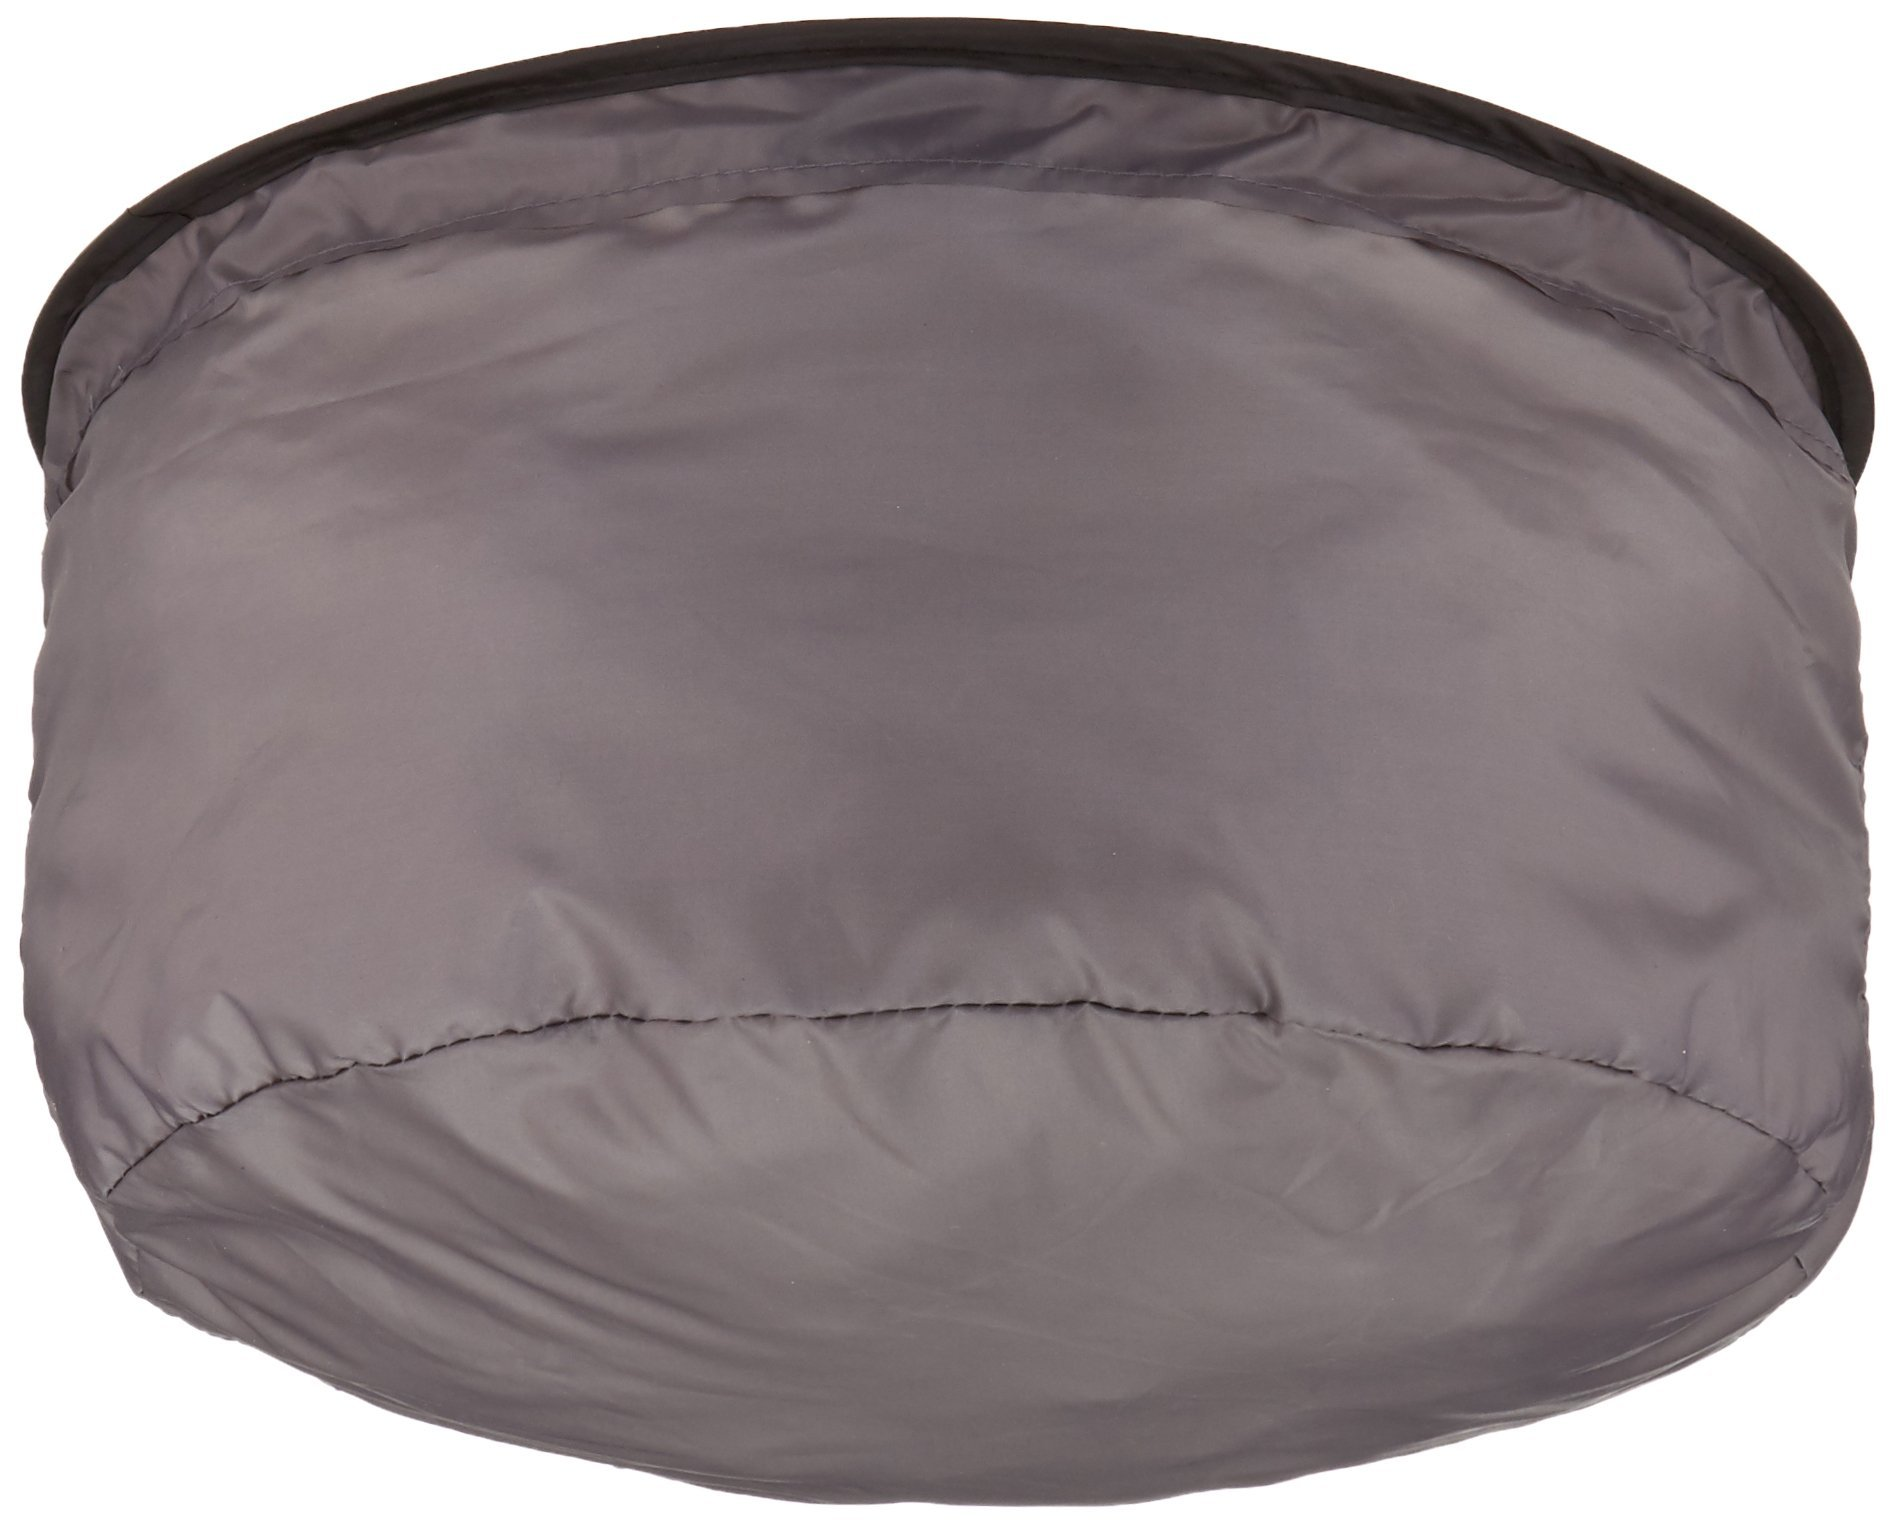 OEM SYSTEMS COMPANY ISF-147 Pop-up Nylon Ceiling Speaker Protective Cover (Single) BLACK